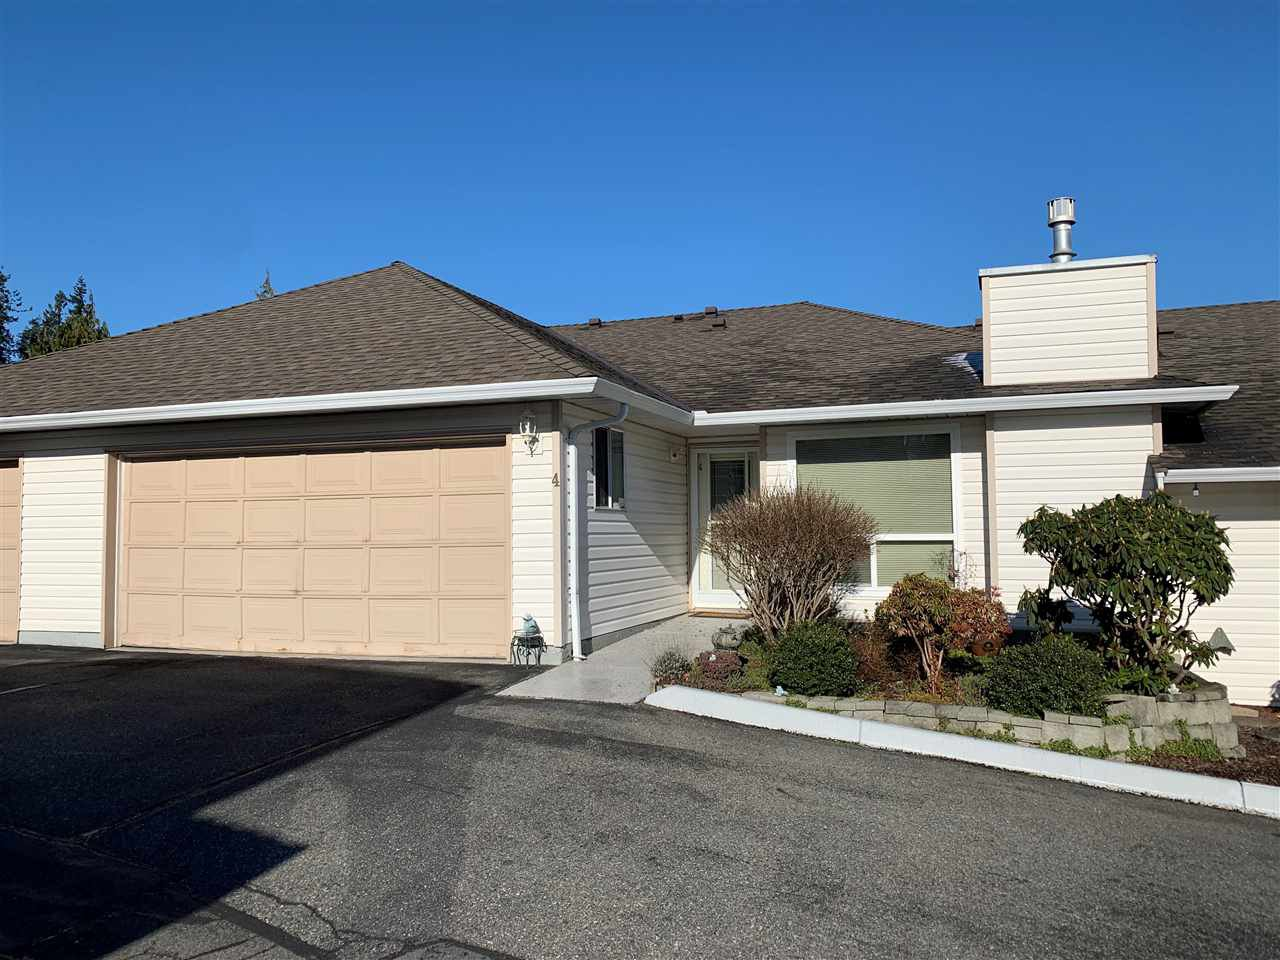 """Main Photo: 4 32640 MURRAY Avenue in Abbotsford: Central Abbotsford Townhouse for sale in """"Parkside Place"""" : MLS®# R2430513"""